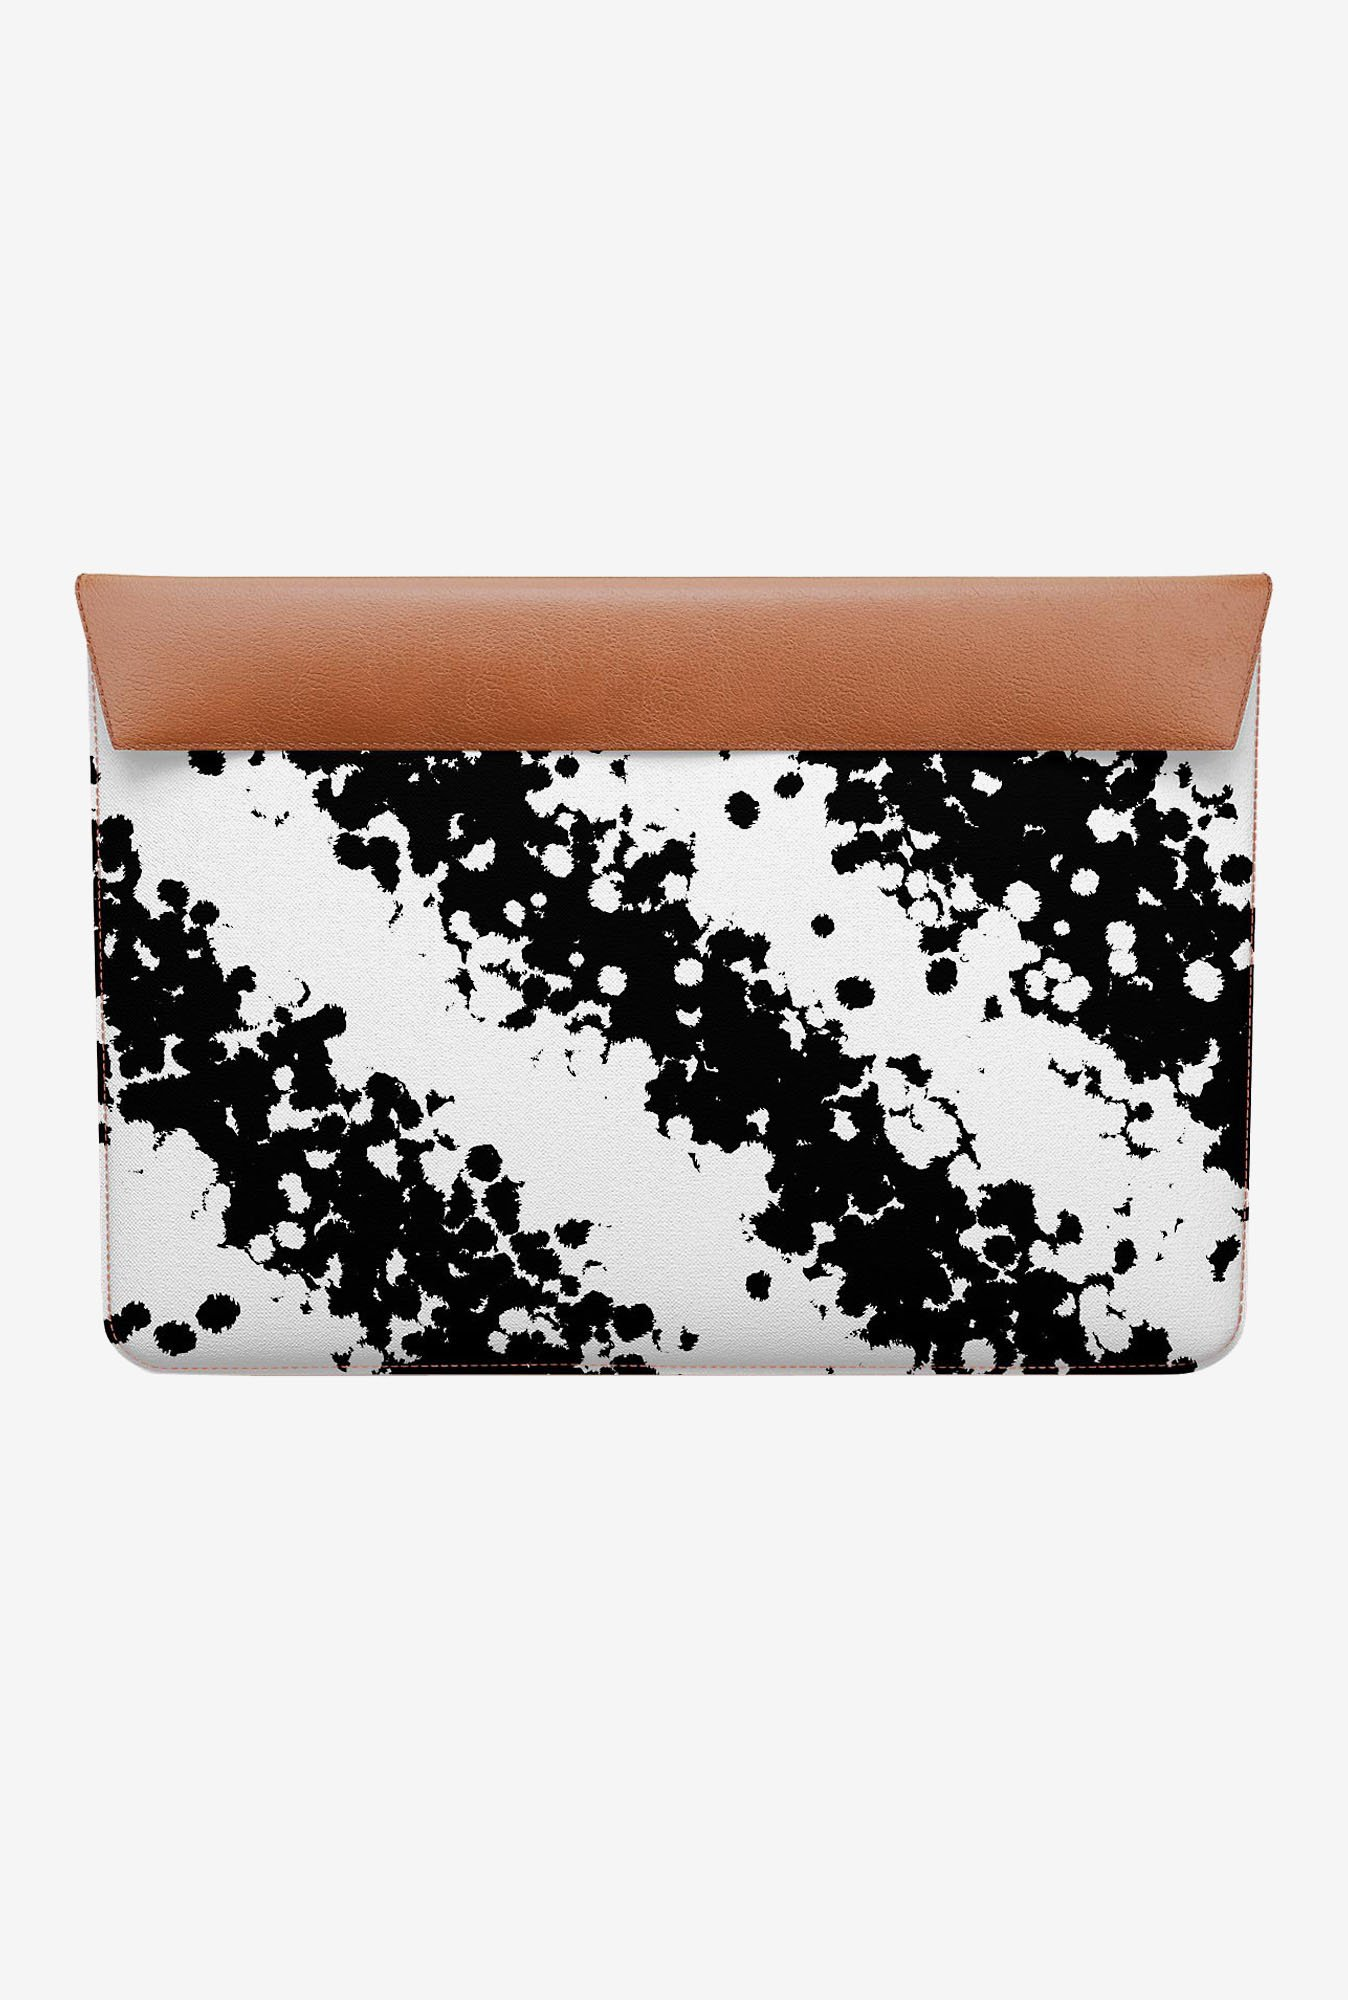 DailyObjects Polka Stripes MacBook Pro 15 Envelope Sleeve